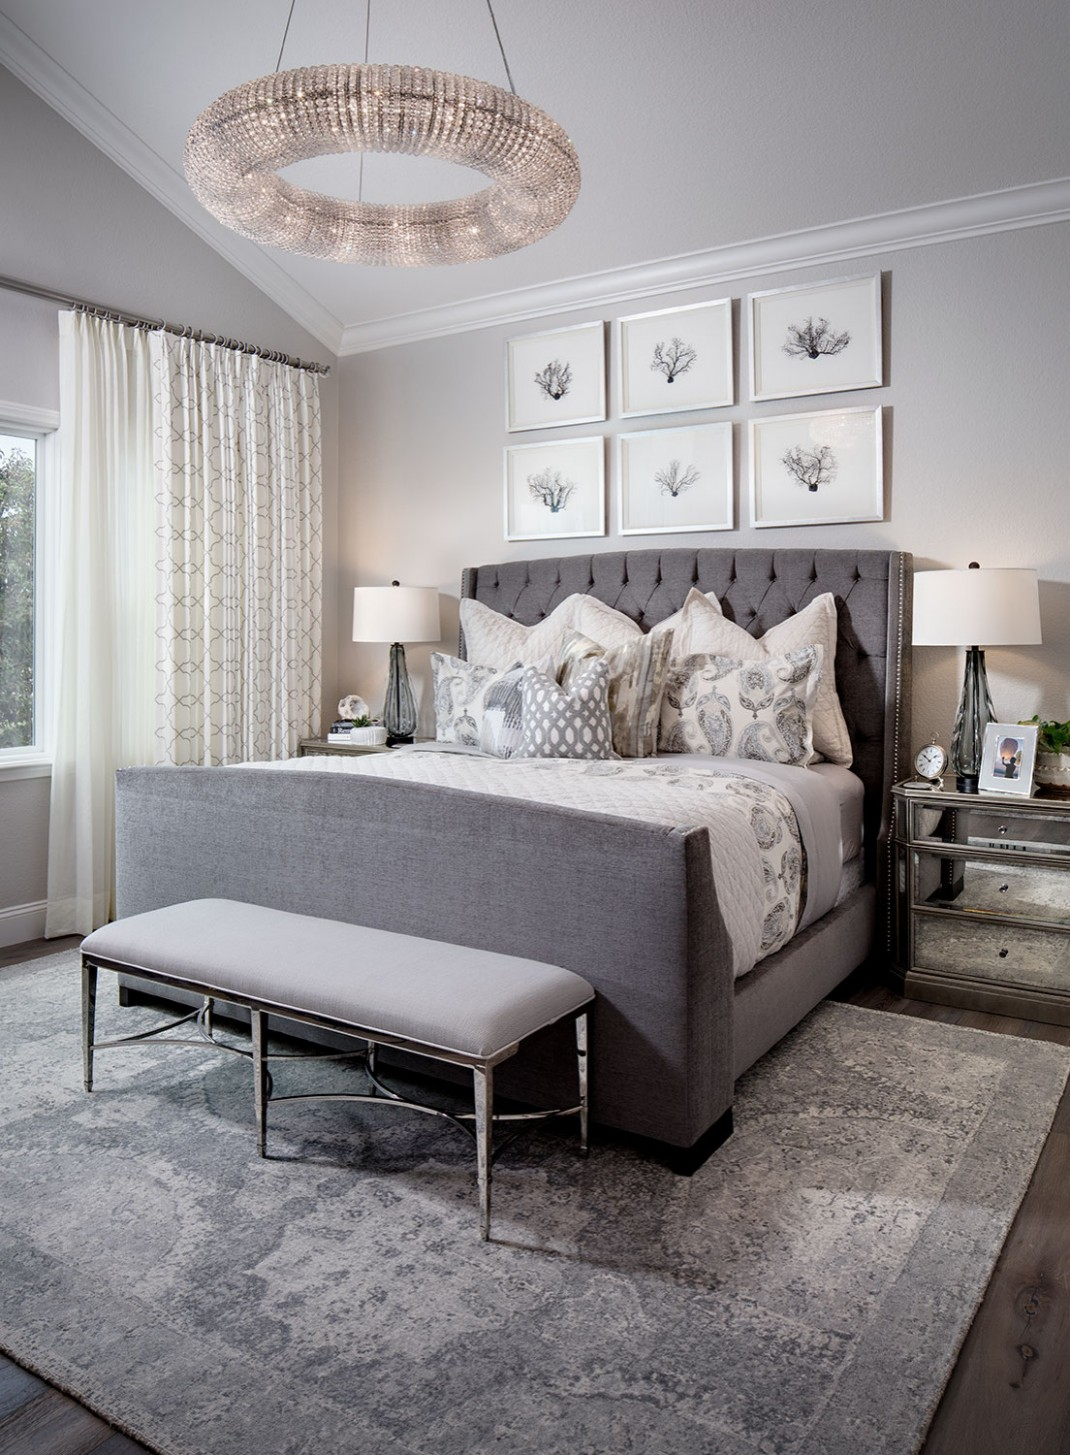 8 Beautiful Gray Bedroom Pictures & Ideas - November, 8  Houzz - Bedroom Ideas With Grey Walls